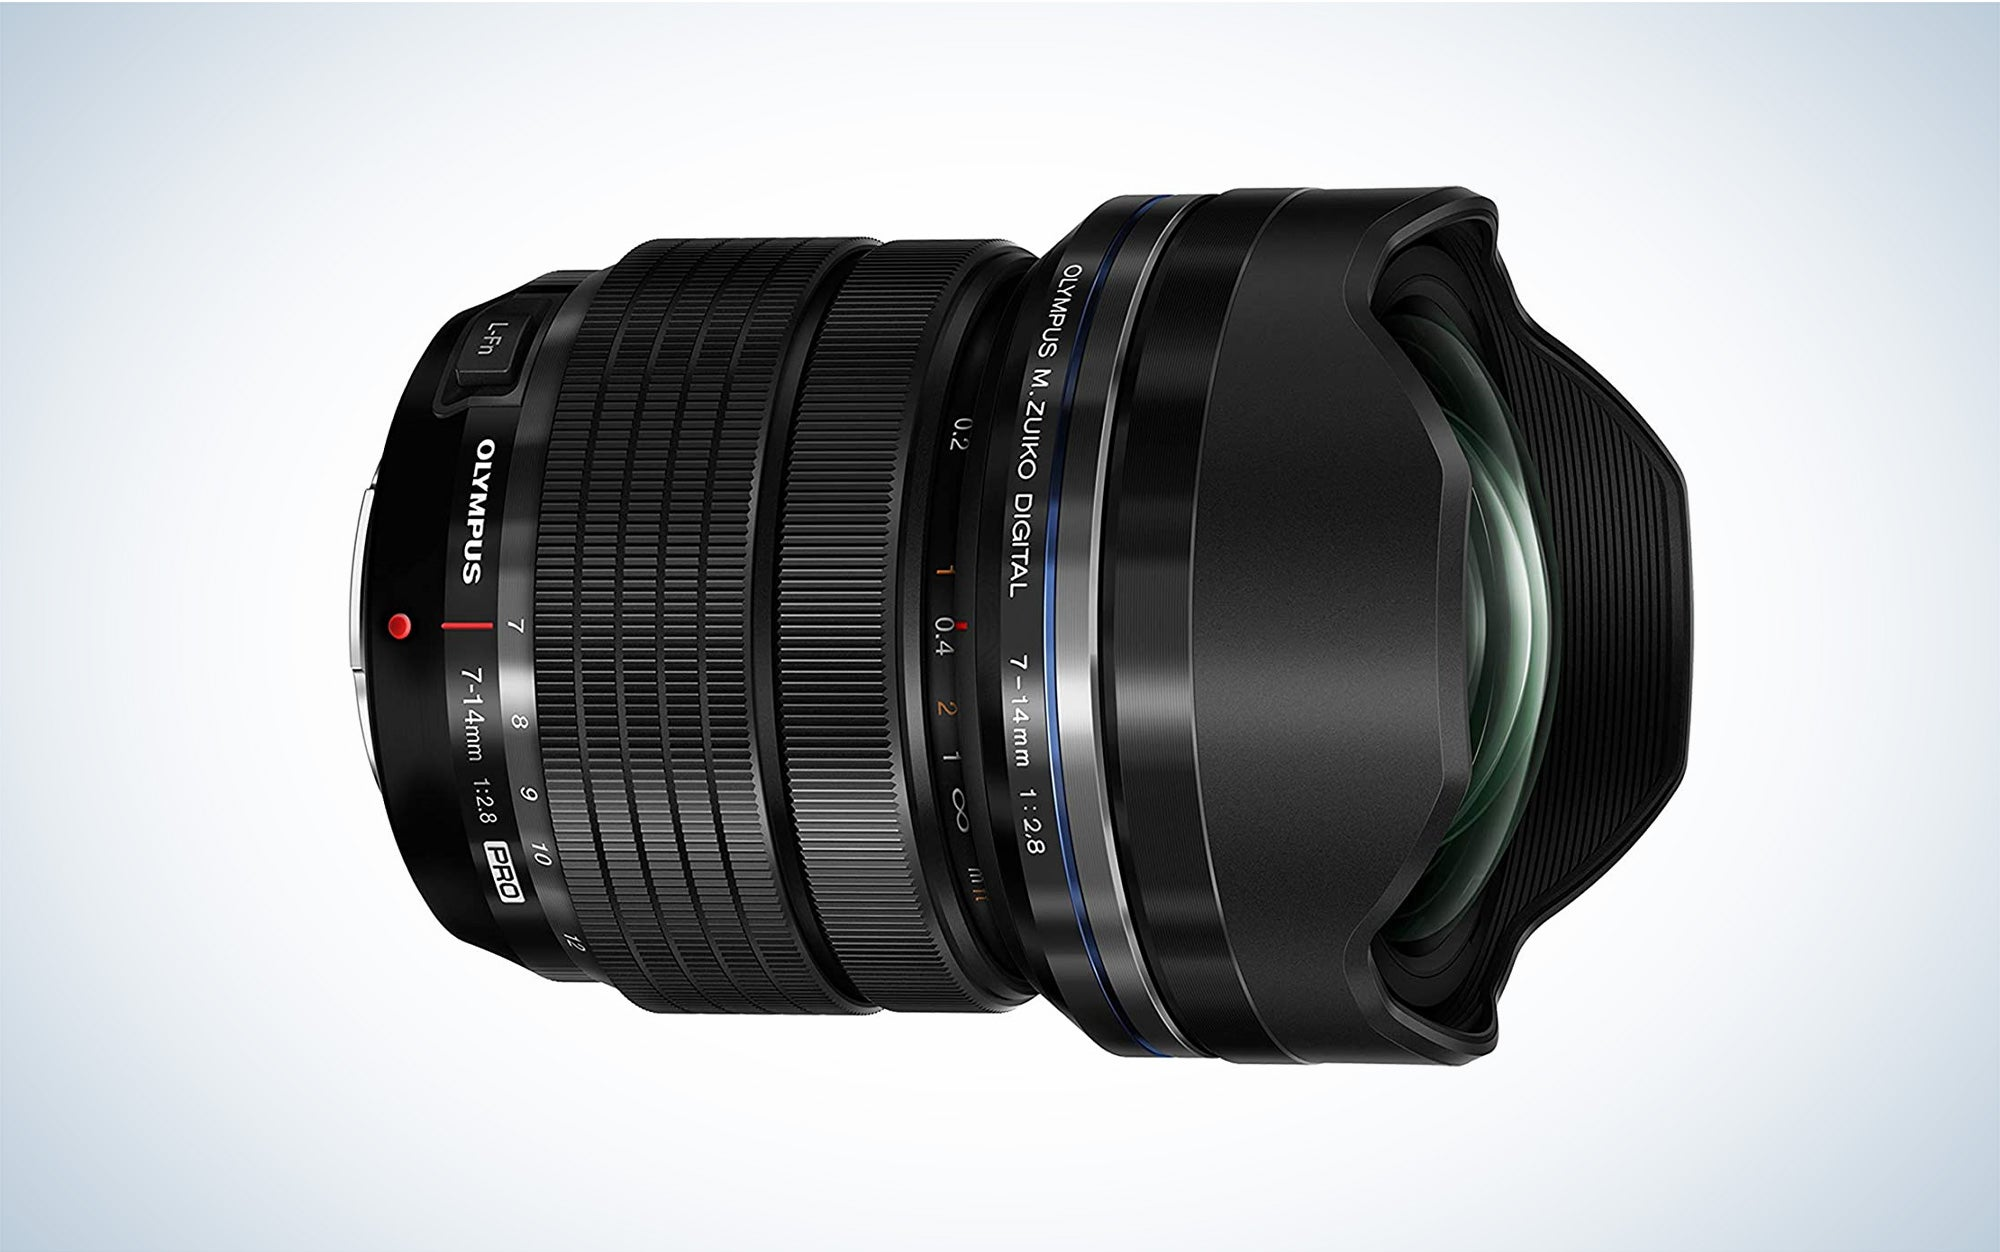 Olympus wide-angle zoom lens is the best wide angle lens.